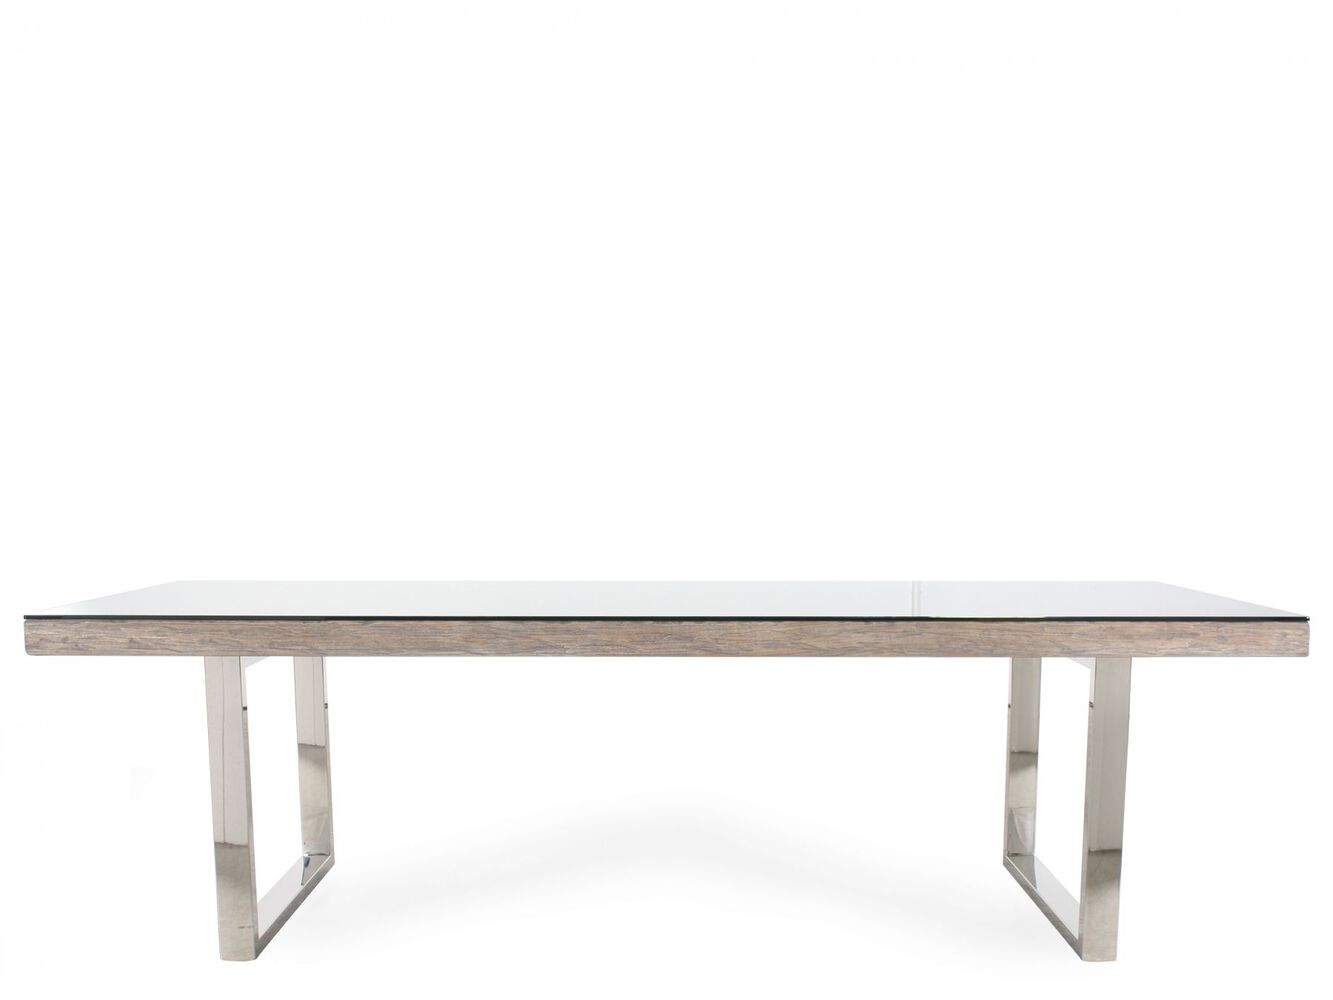 Bernhardt Interiors Henley Glass Dining Table - Bernhardt Interiors Henley Glass Dining Table Mathis Brothers